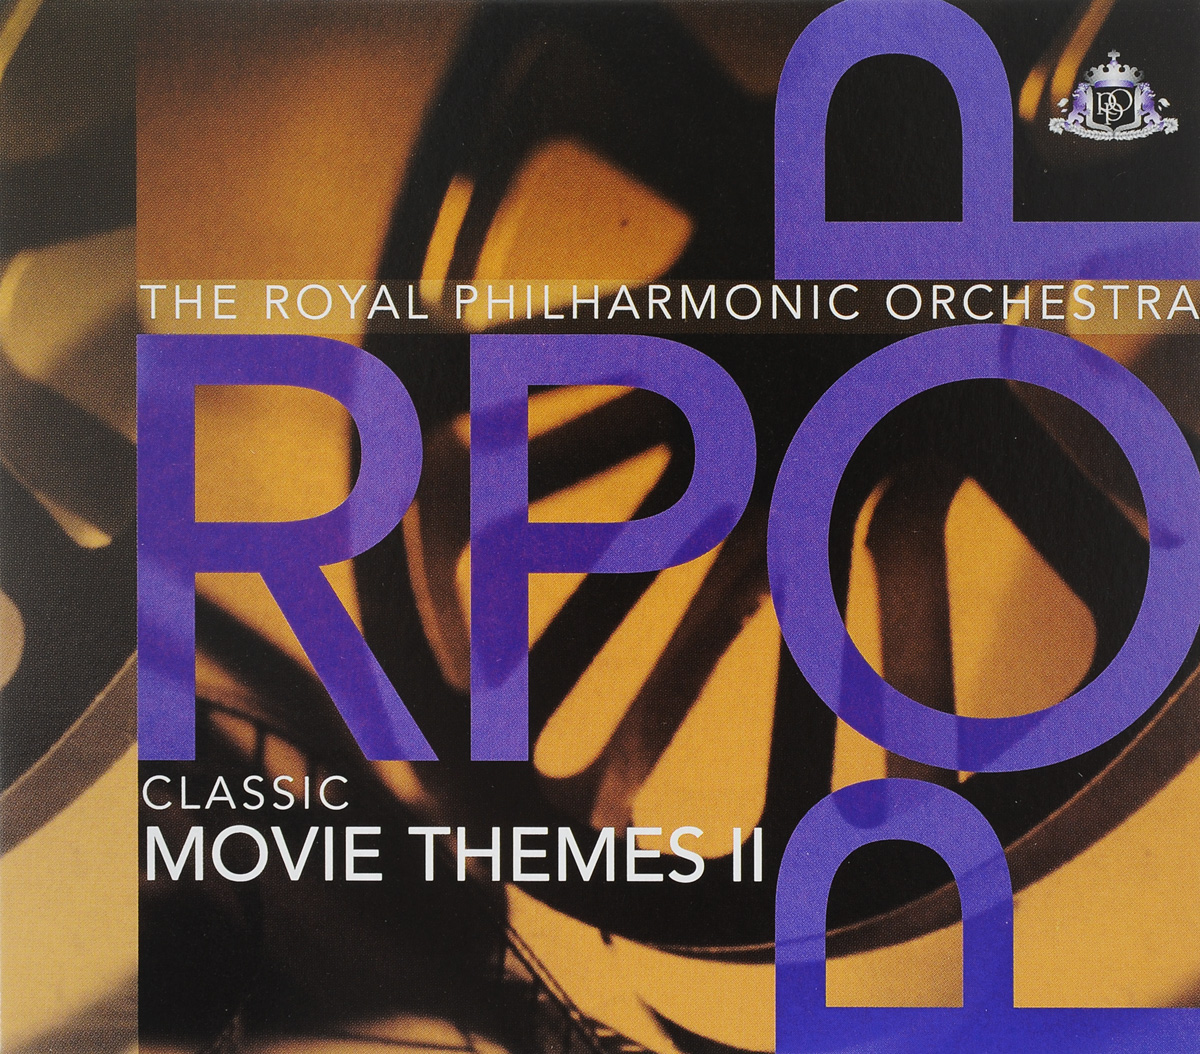 The Royal Philharmonic Orchestra Royal Philharmonic Orchestra. Classic Movie Themes II the royal philharmonic orchestra royal philharmonic orchestra classic movie themes ii